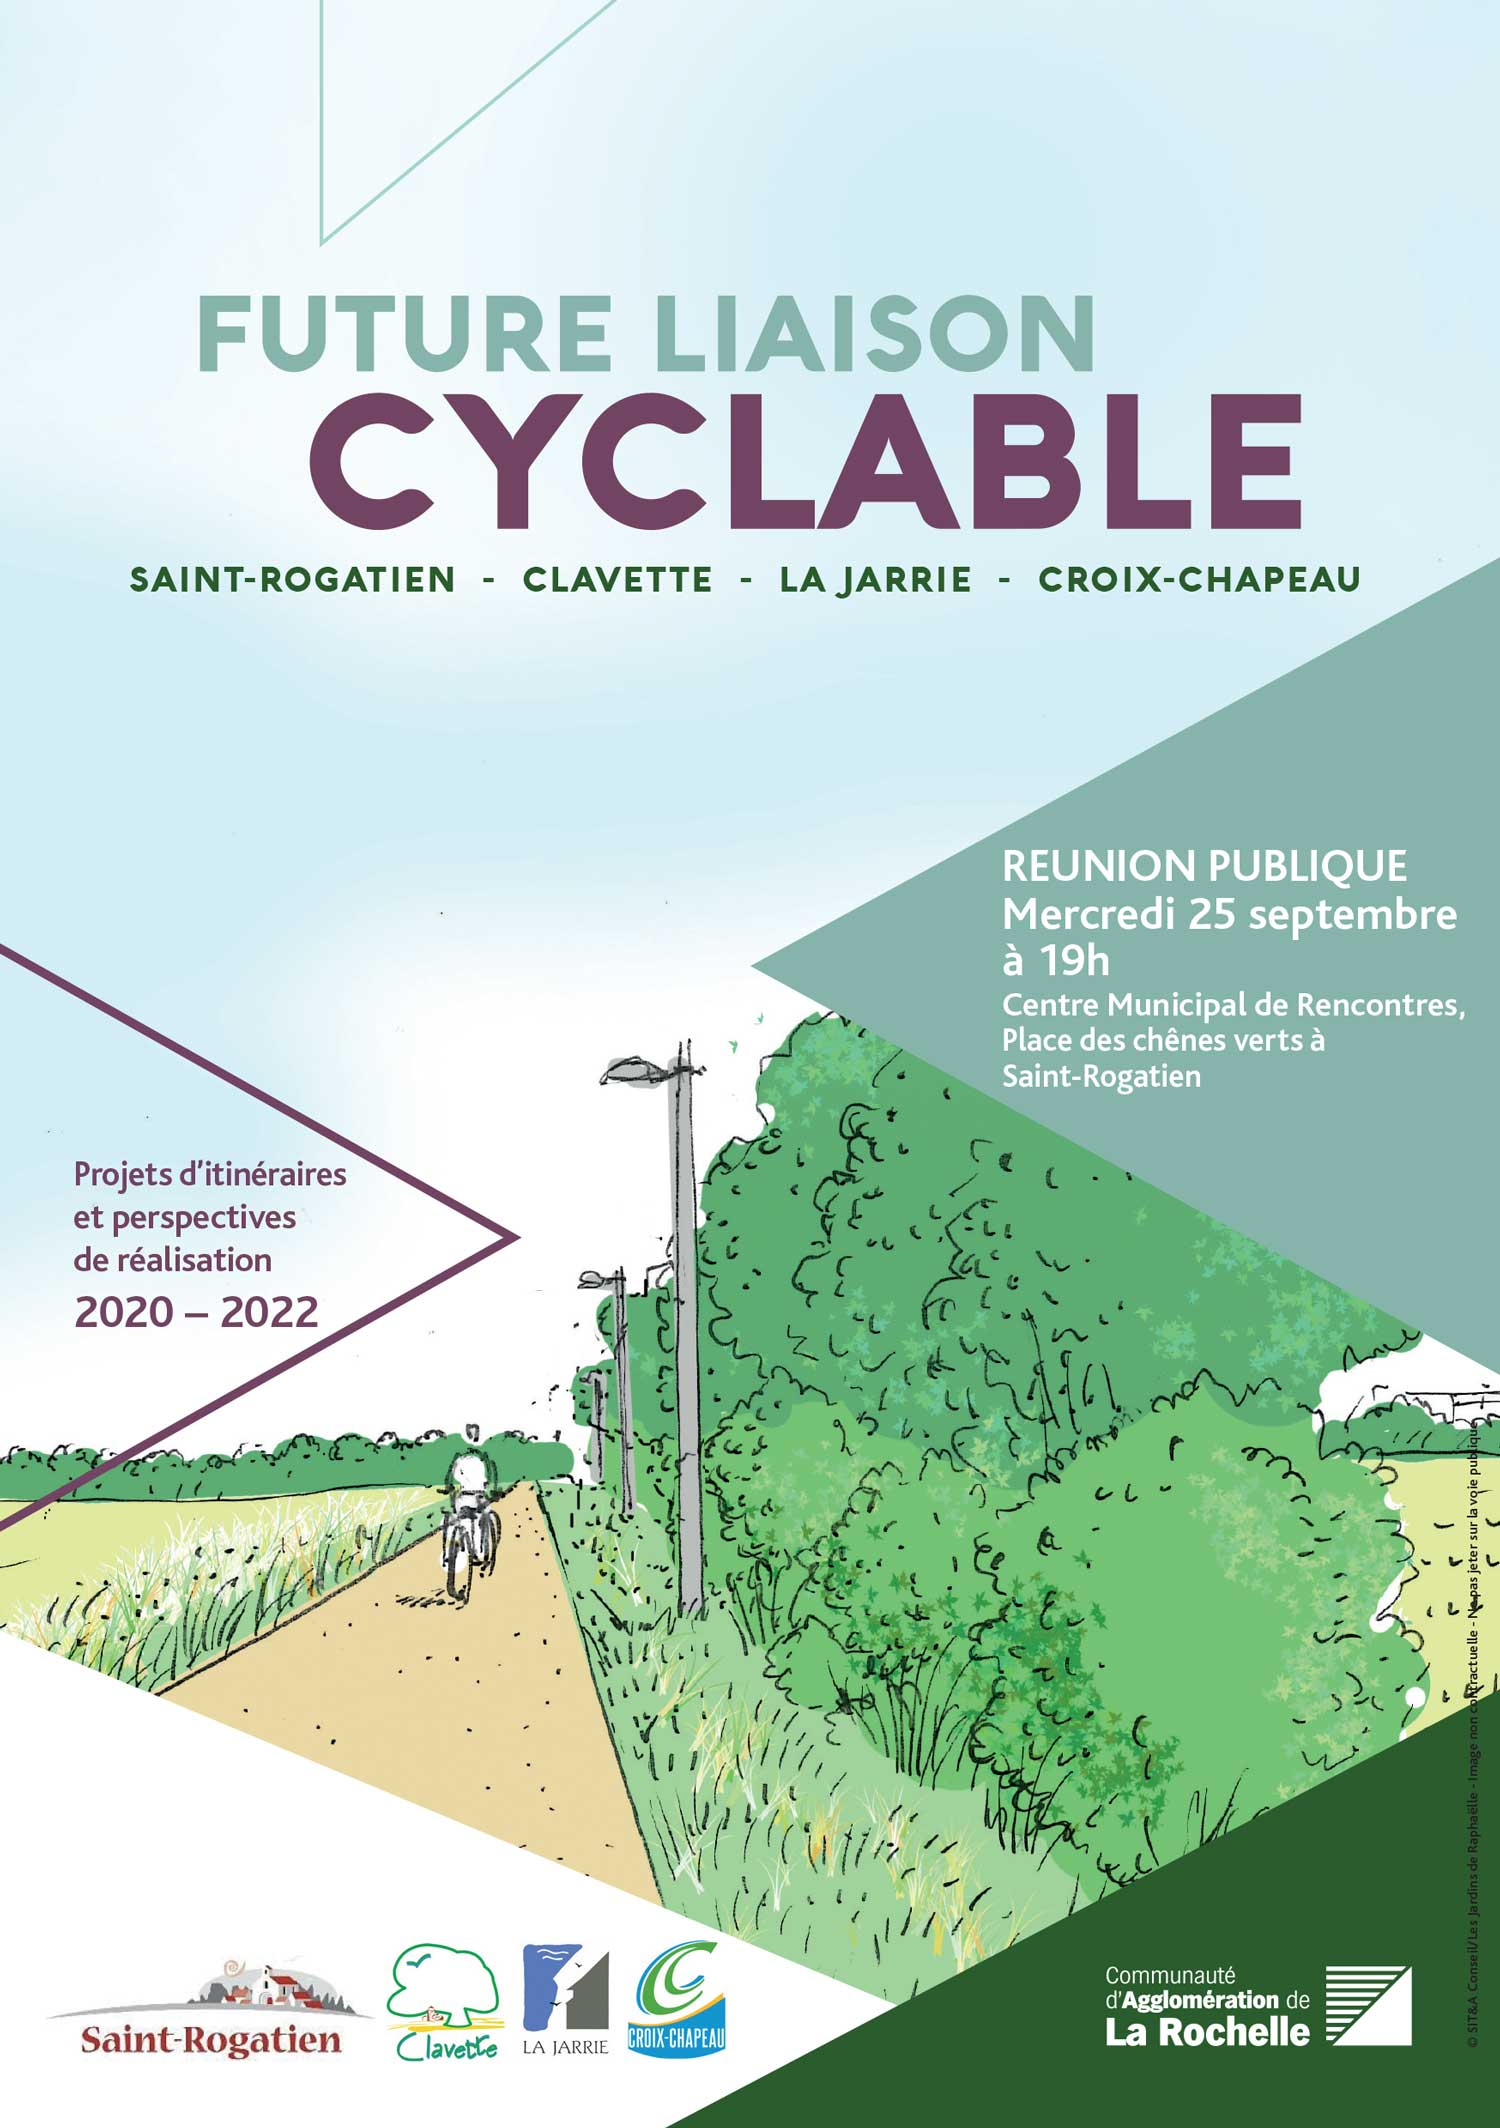 Laison cyclable pdf